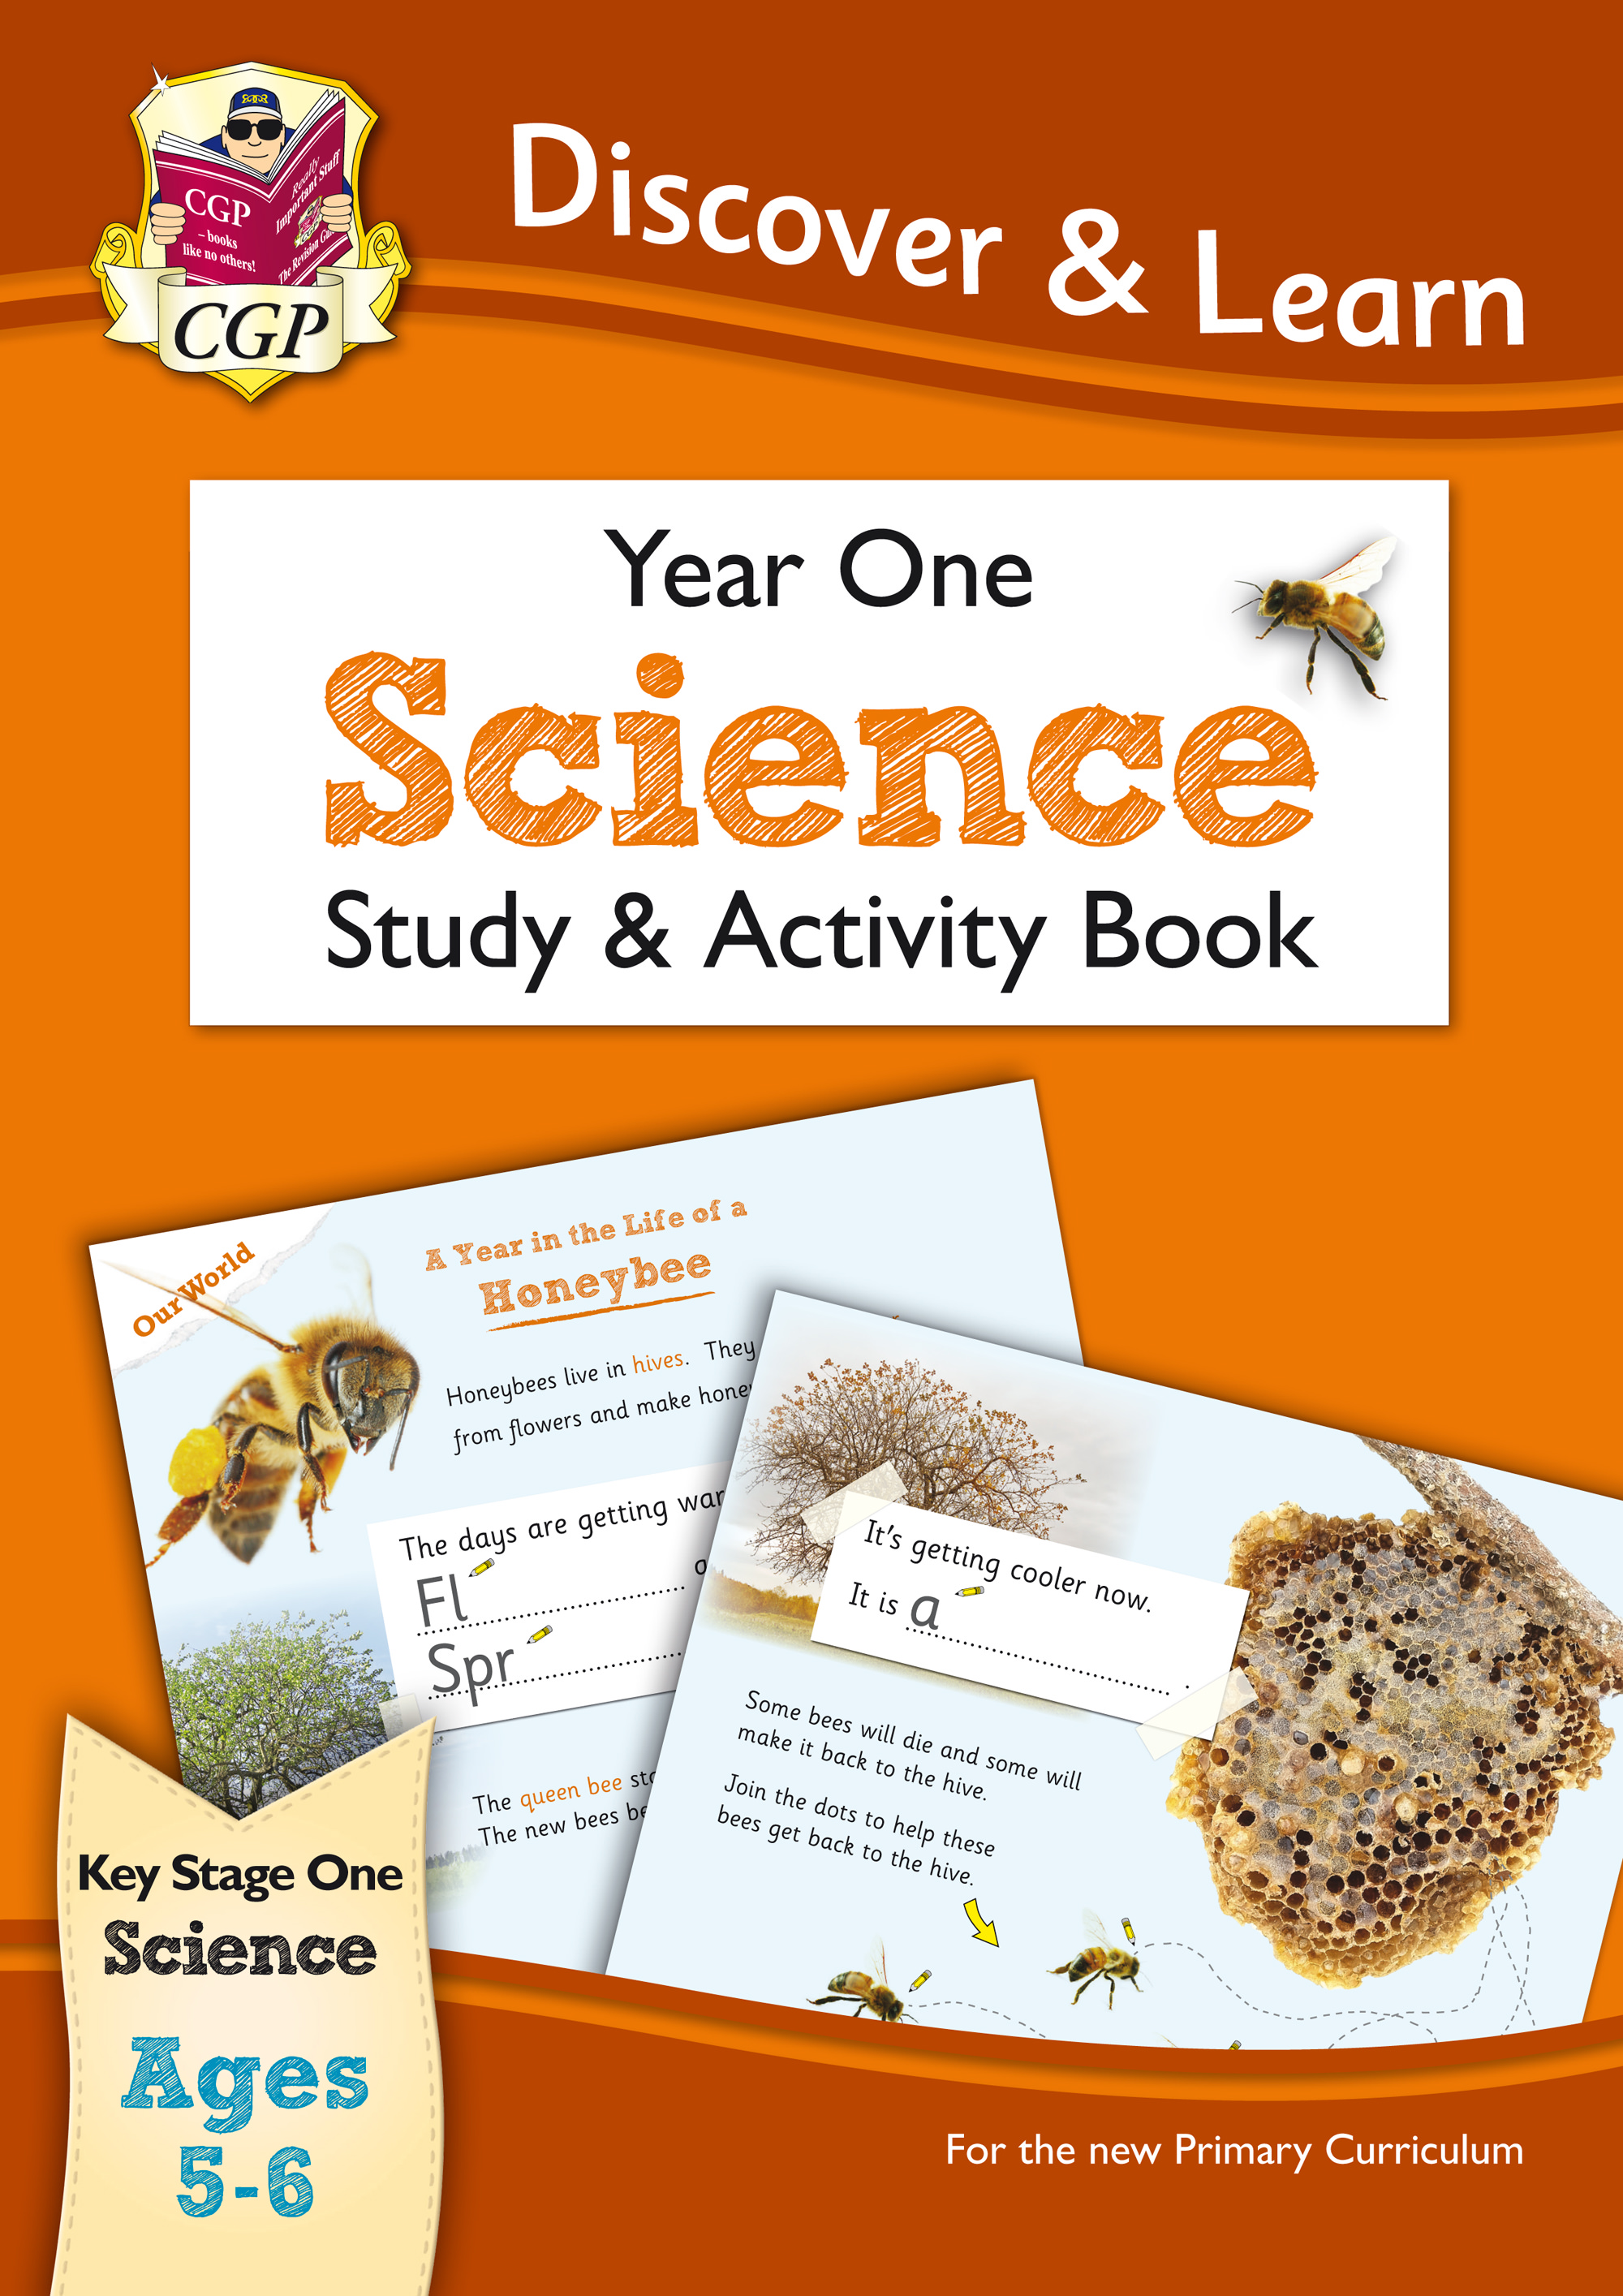 S1W11 - KS1 Discover & Learn: Science - Study & Activity Book, Year 1